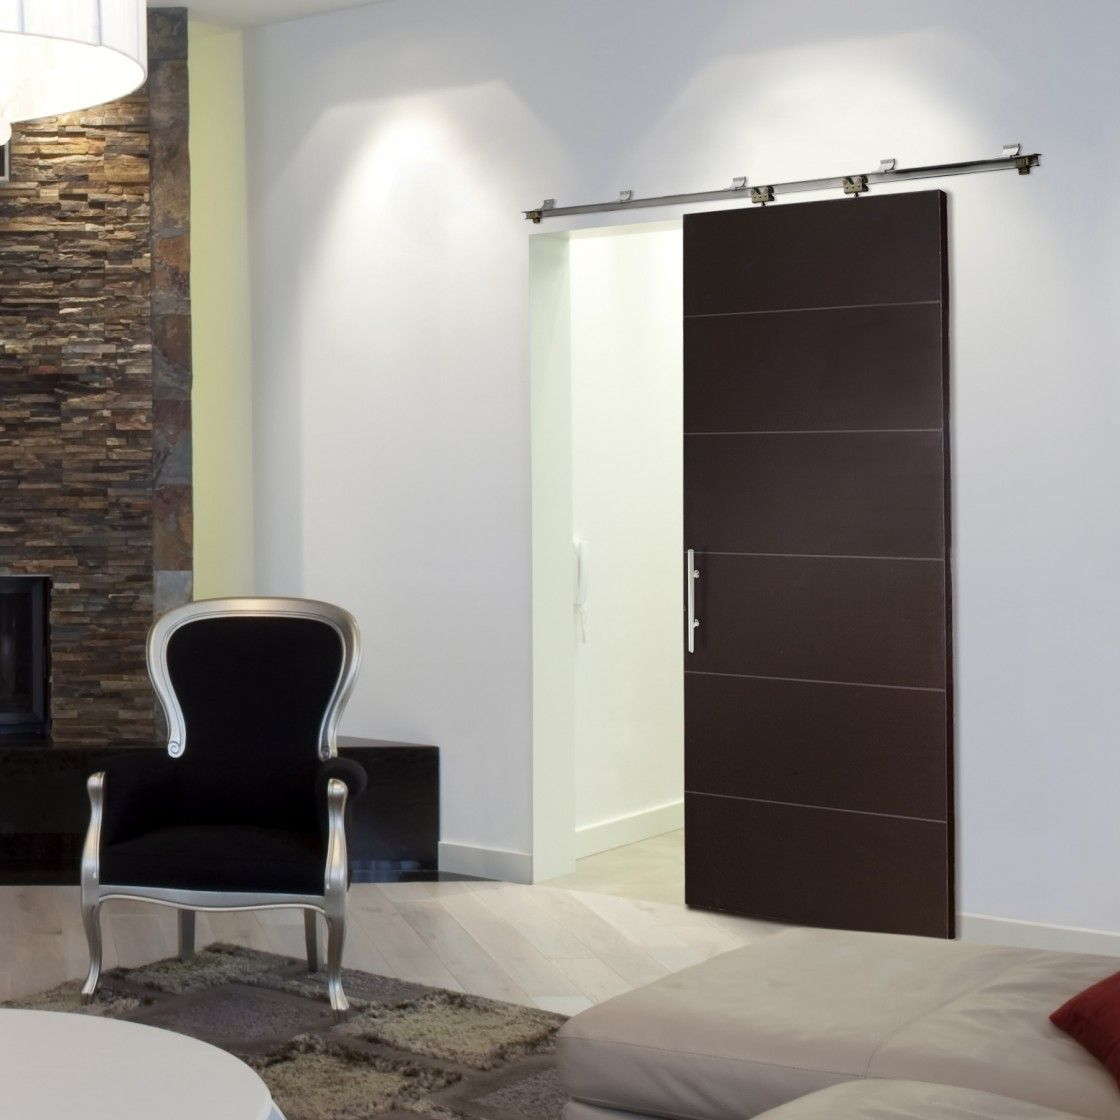 Sliding Walls Residential Winsome Brown Wall Interior Glass Doors Design With Black Chair In White Bedroom Installing Internal Door of Awesome Wall Sliding Doors Interior To Beautify Your Home from Furniture Ideas